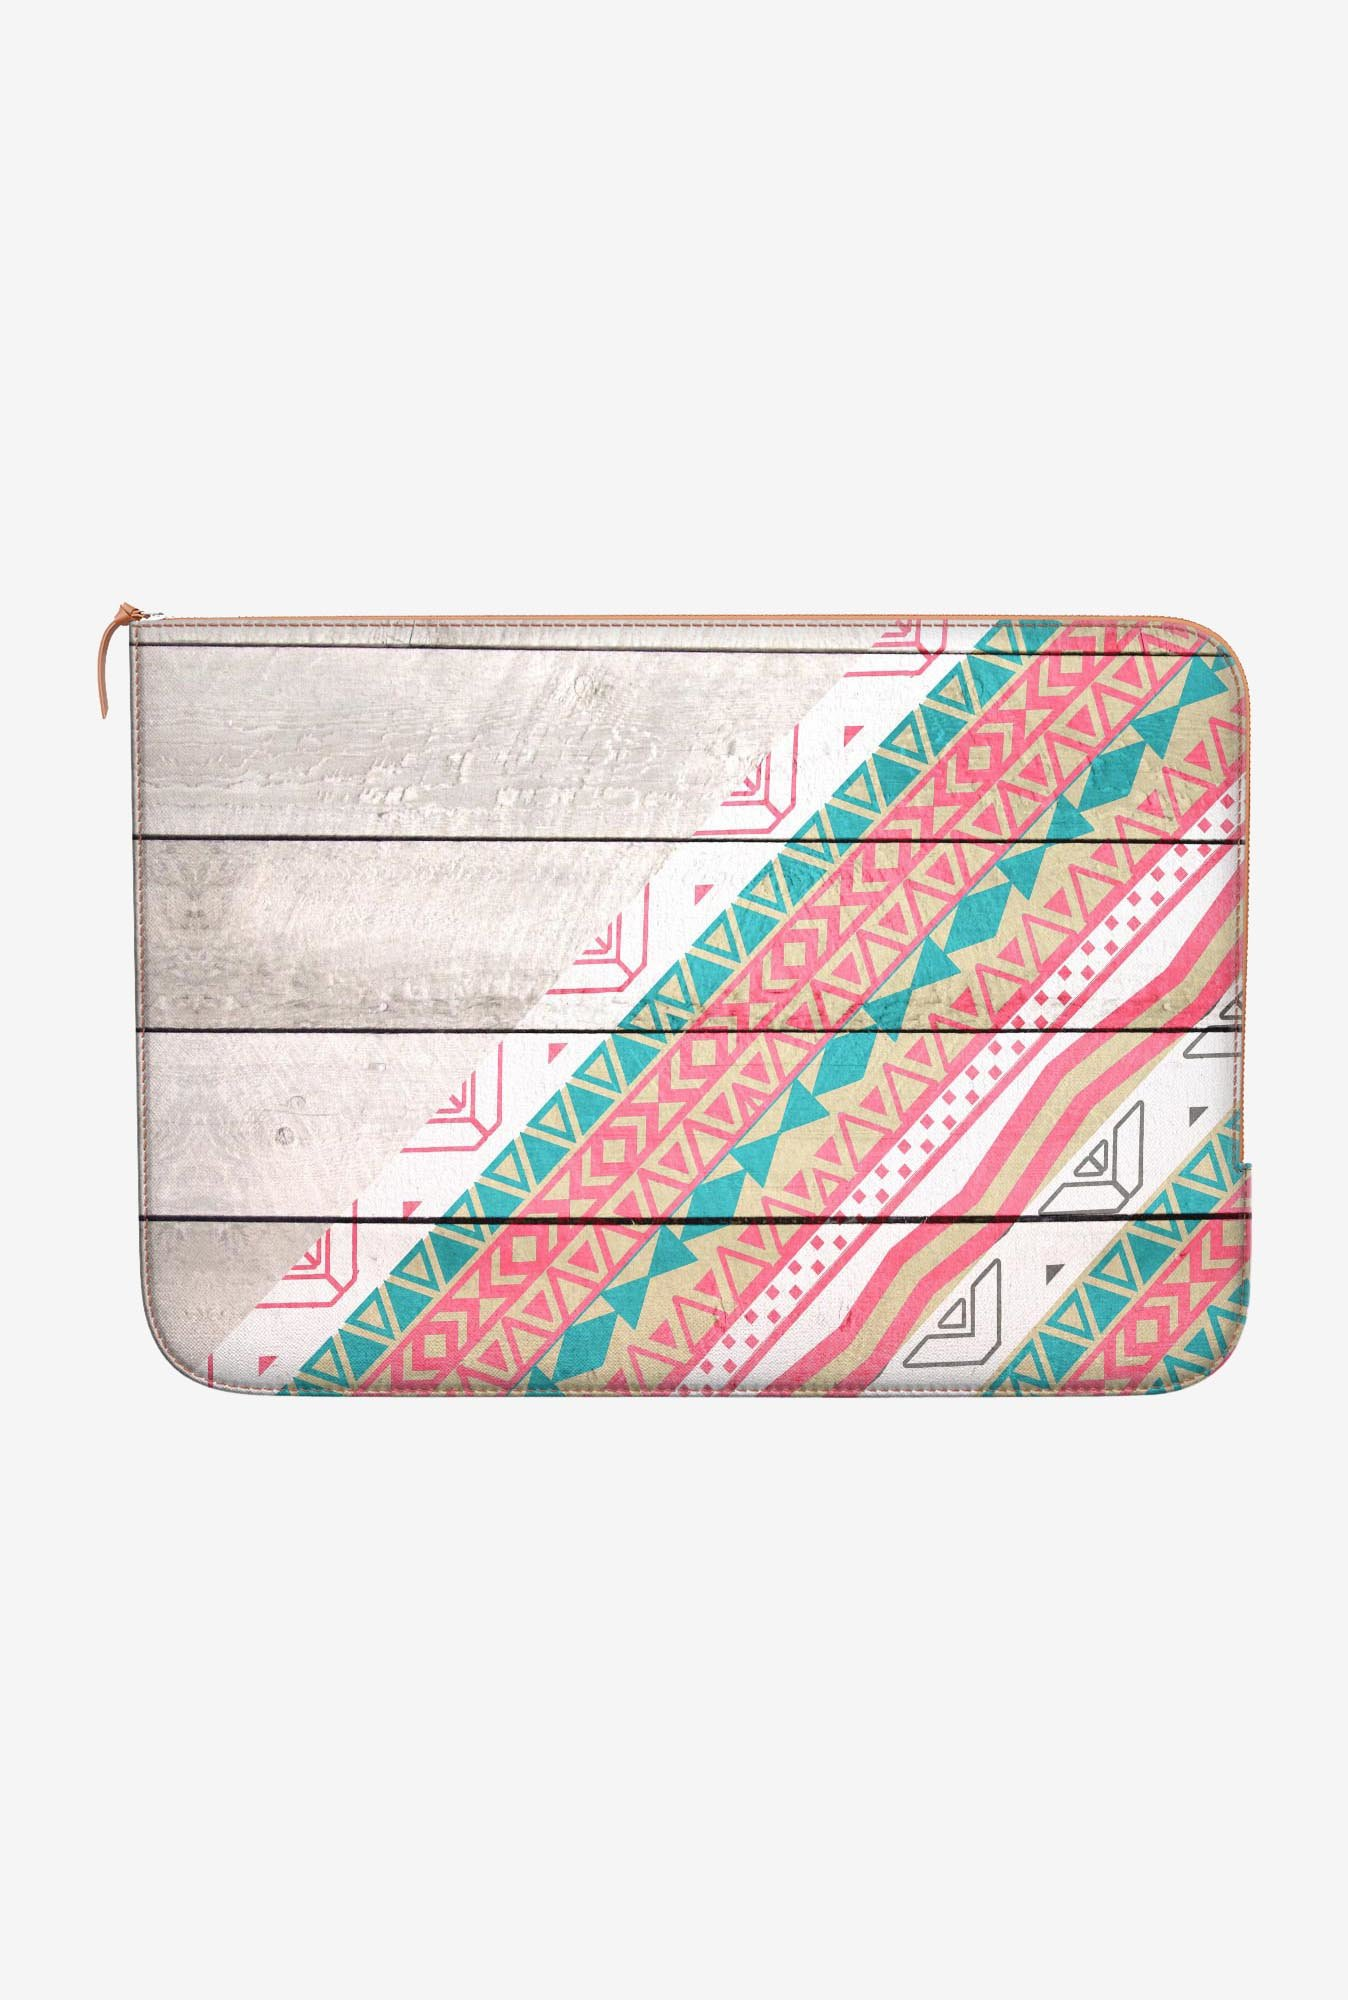 DailyObjects Andes Tribal MacBook 12 Zippered Sleeve